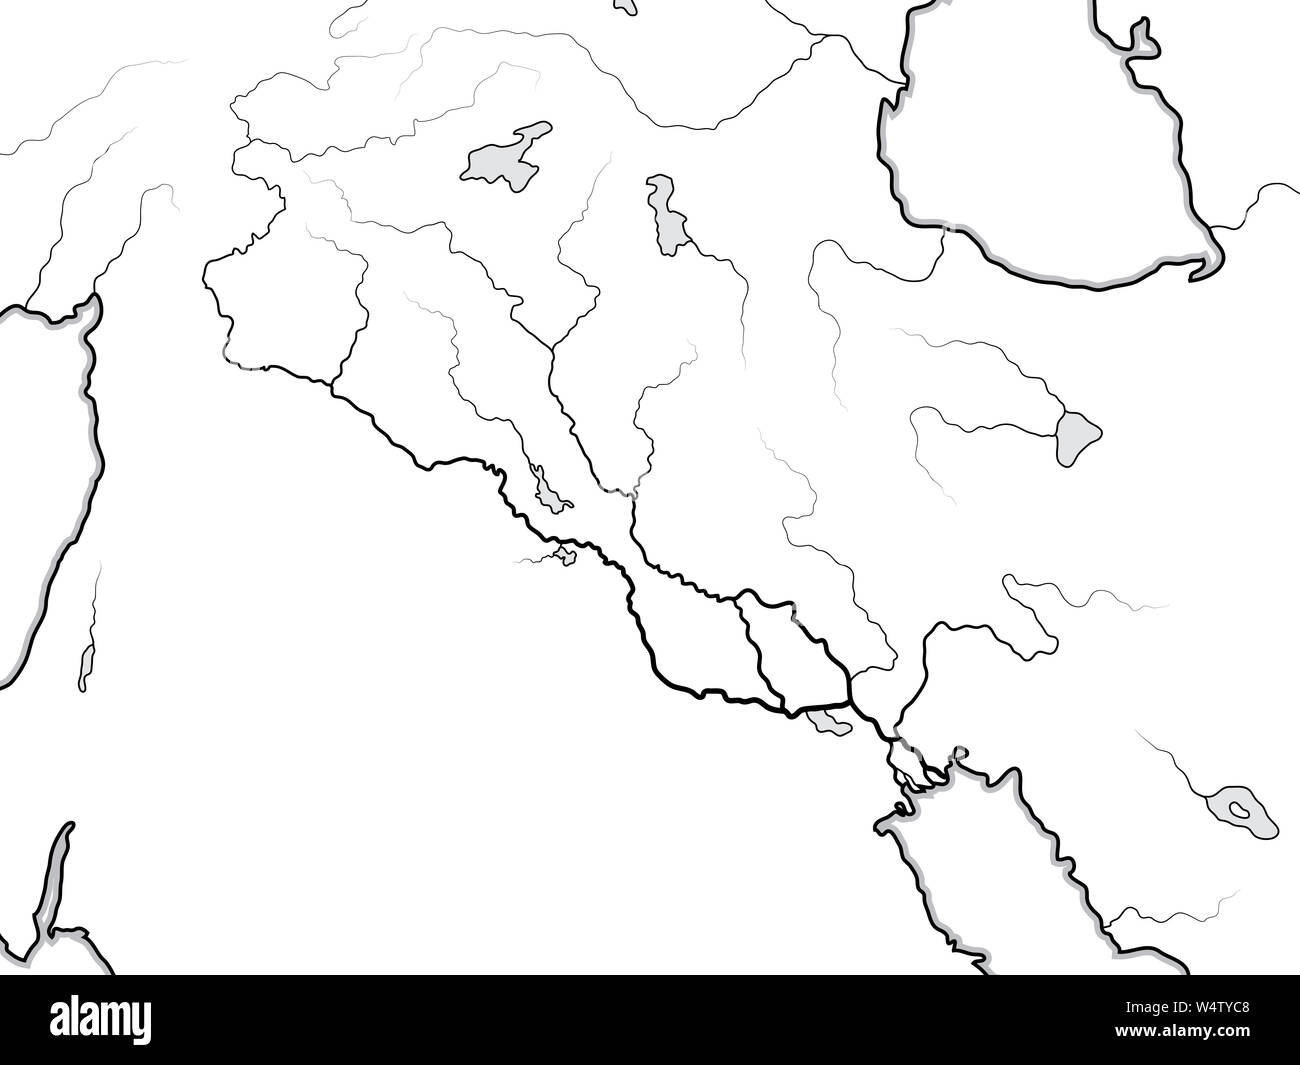 Image of: World Map Of The Tigris Euphrates Valley Iraq Syria Armenia Kurdistan Iran Levant Near East Middle East Persian Gulf Geographic Chart Stock Photo Alamy